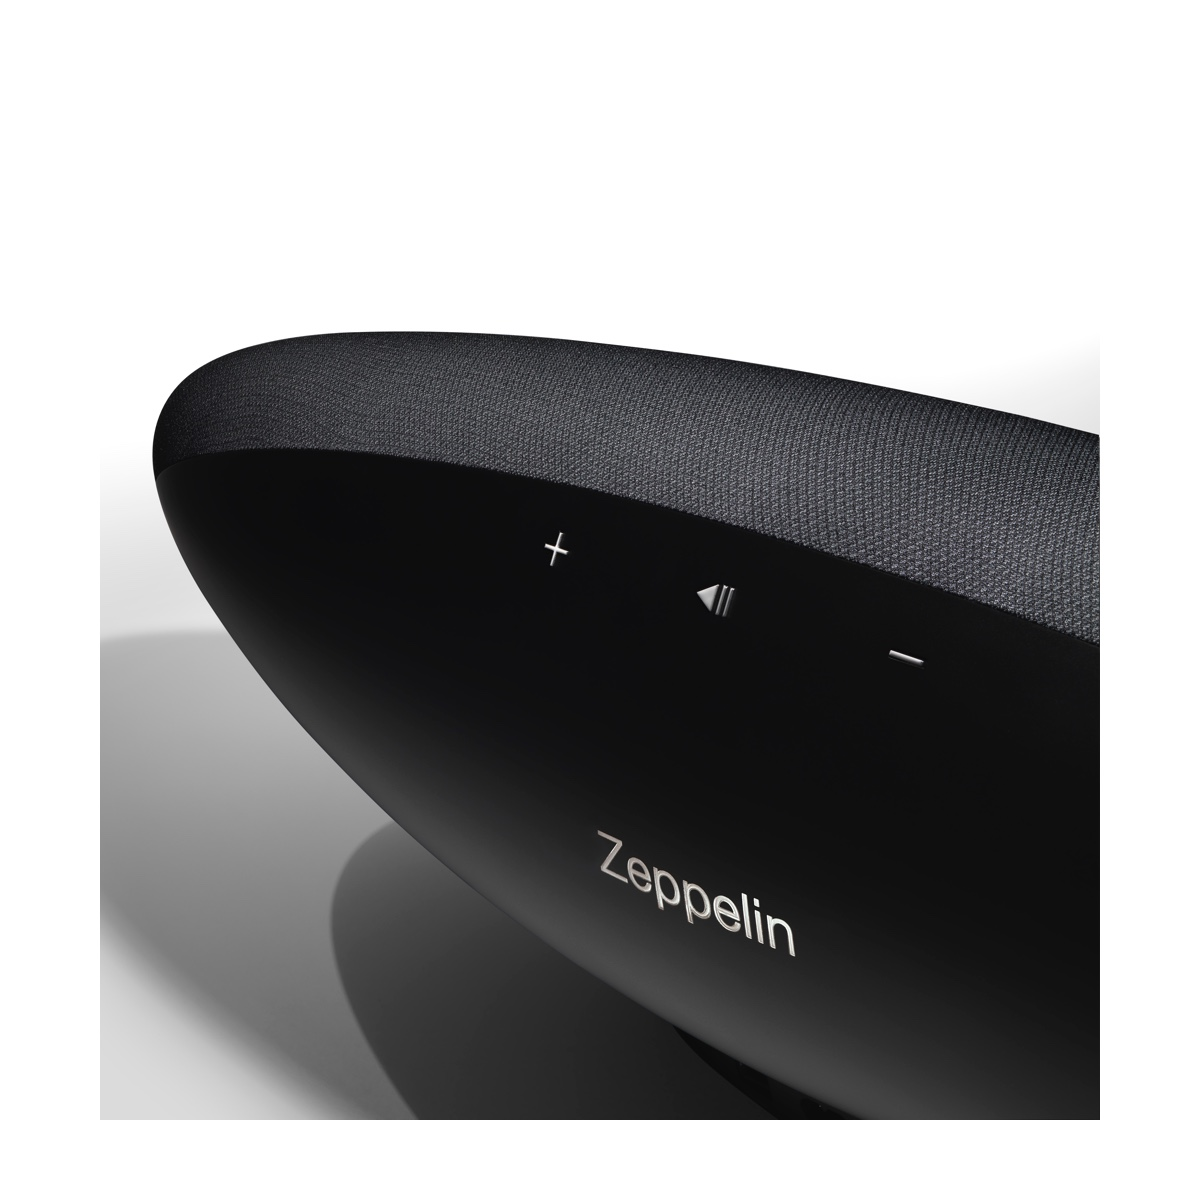 zeppelin wireless Bowers & Wilkins 1200